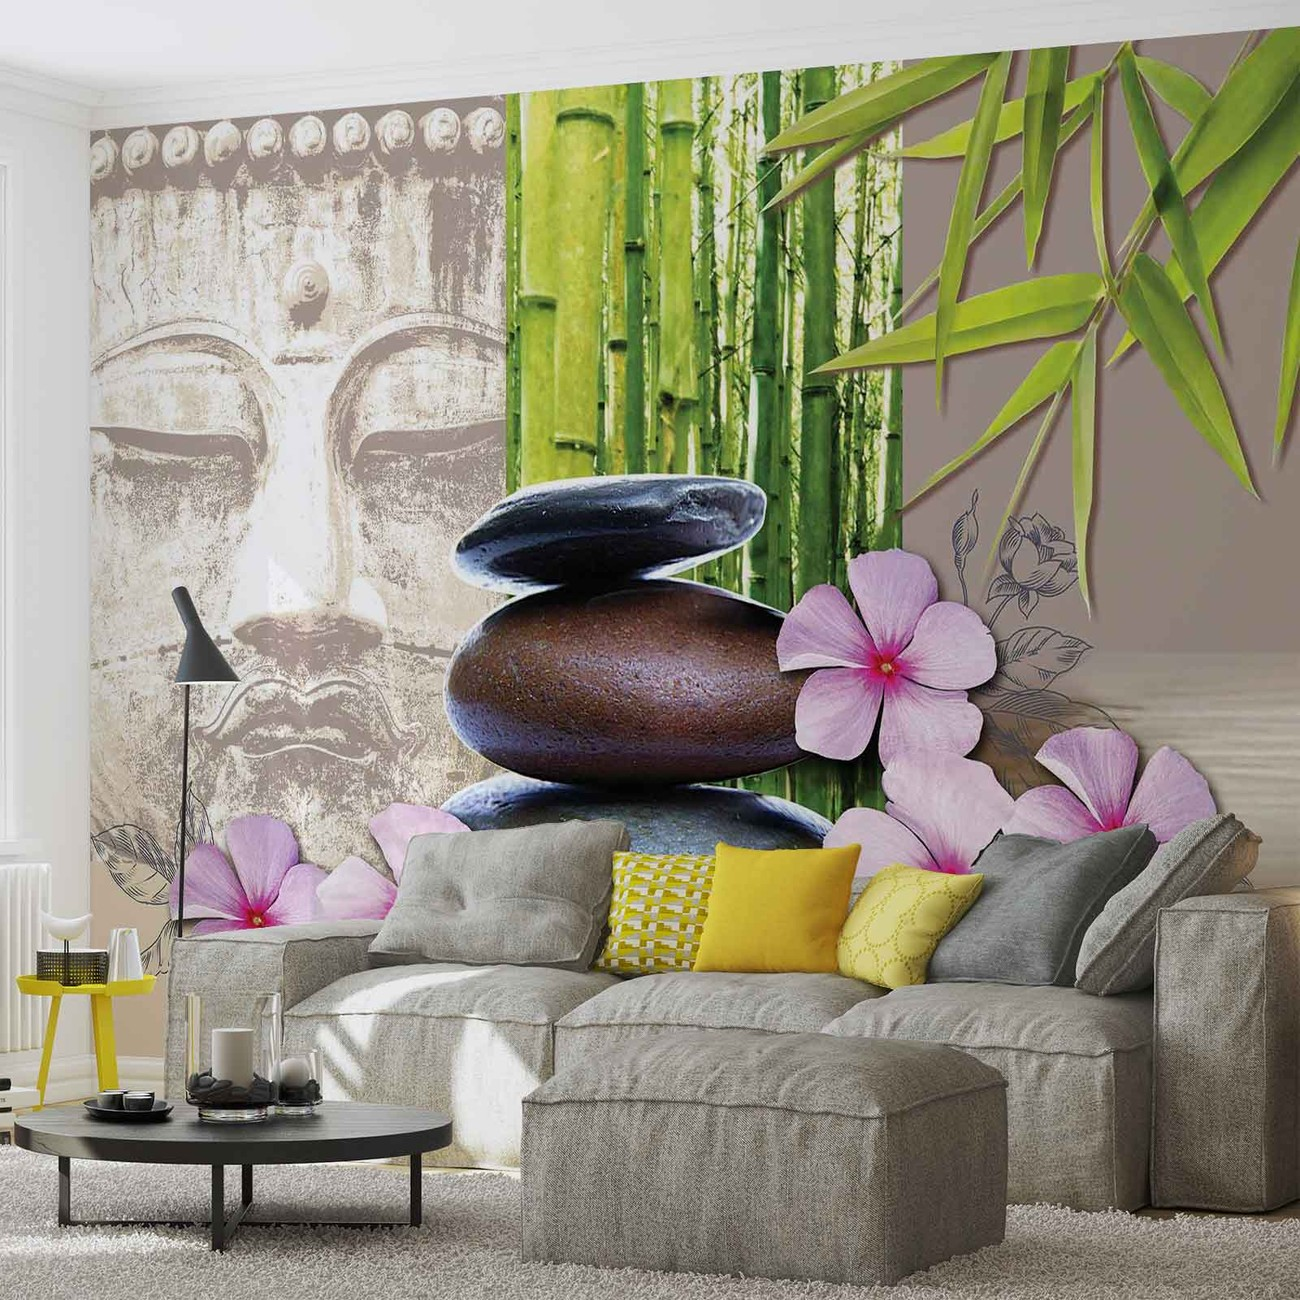 Flowers with zen stones wall paper mural buy at europosters for Poster mural geant zen